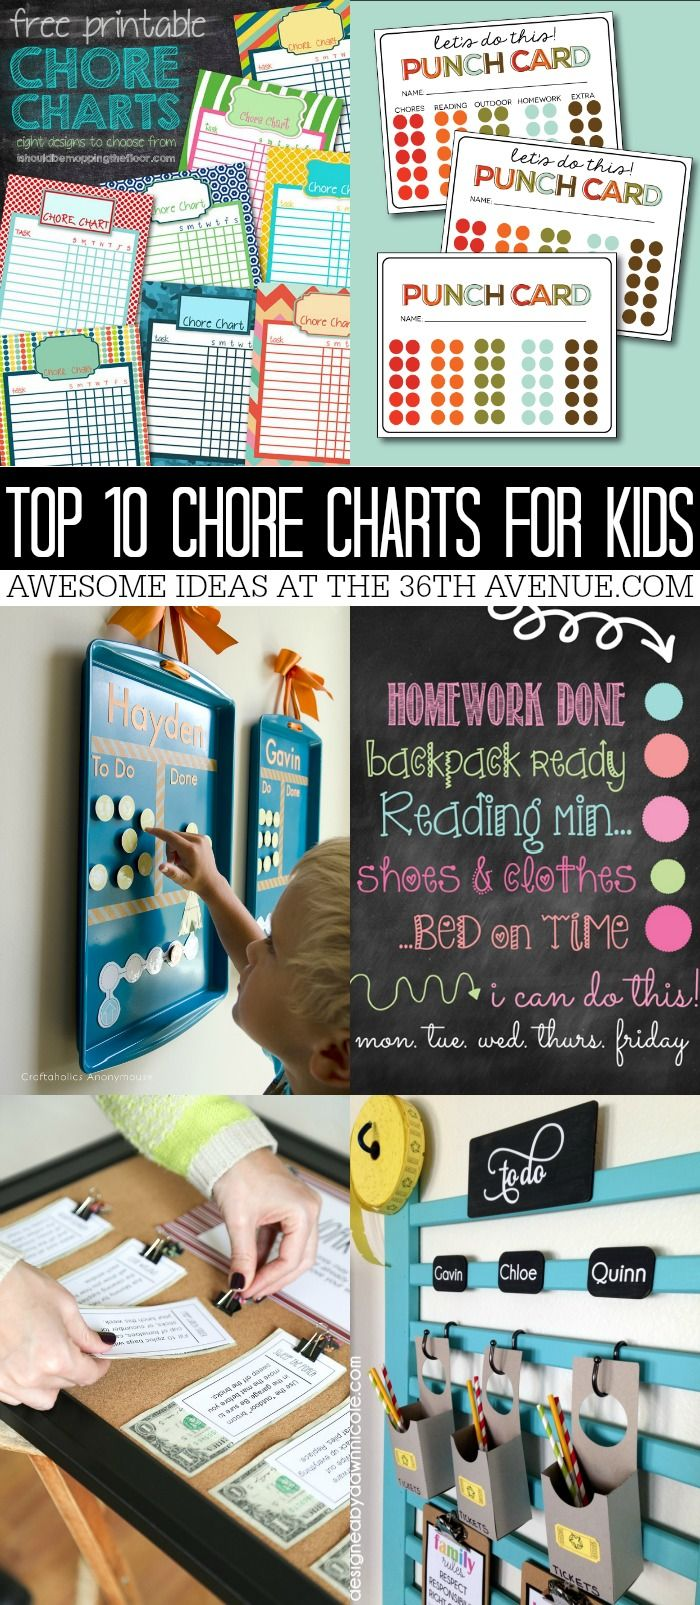 Top Chore Chart for kids at the36thavenue.com